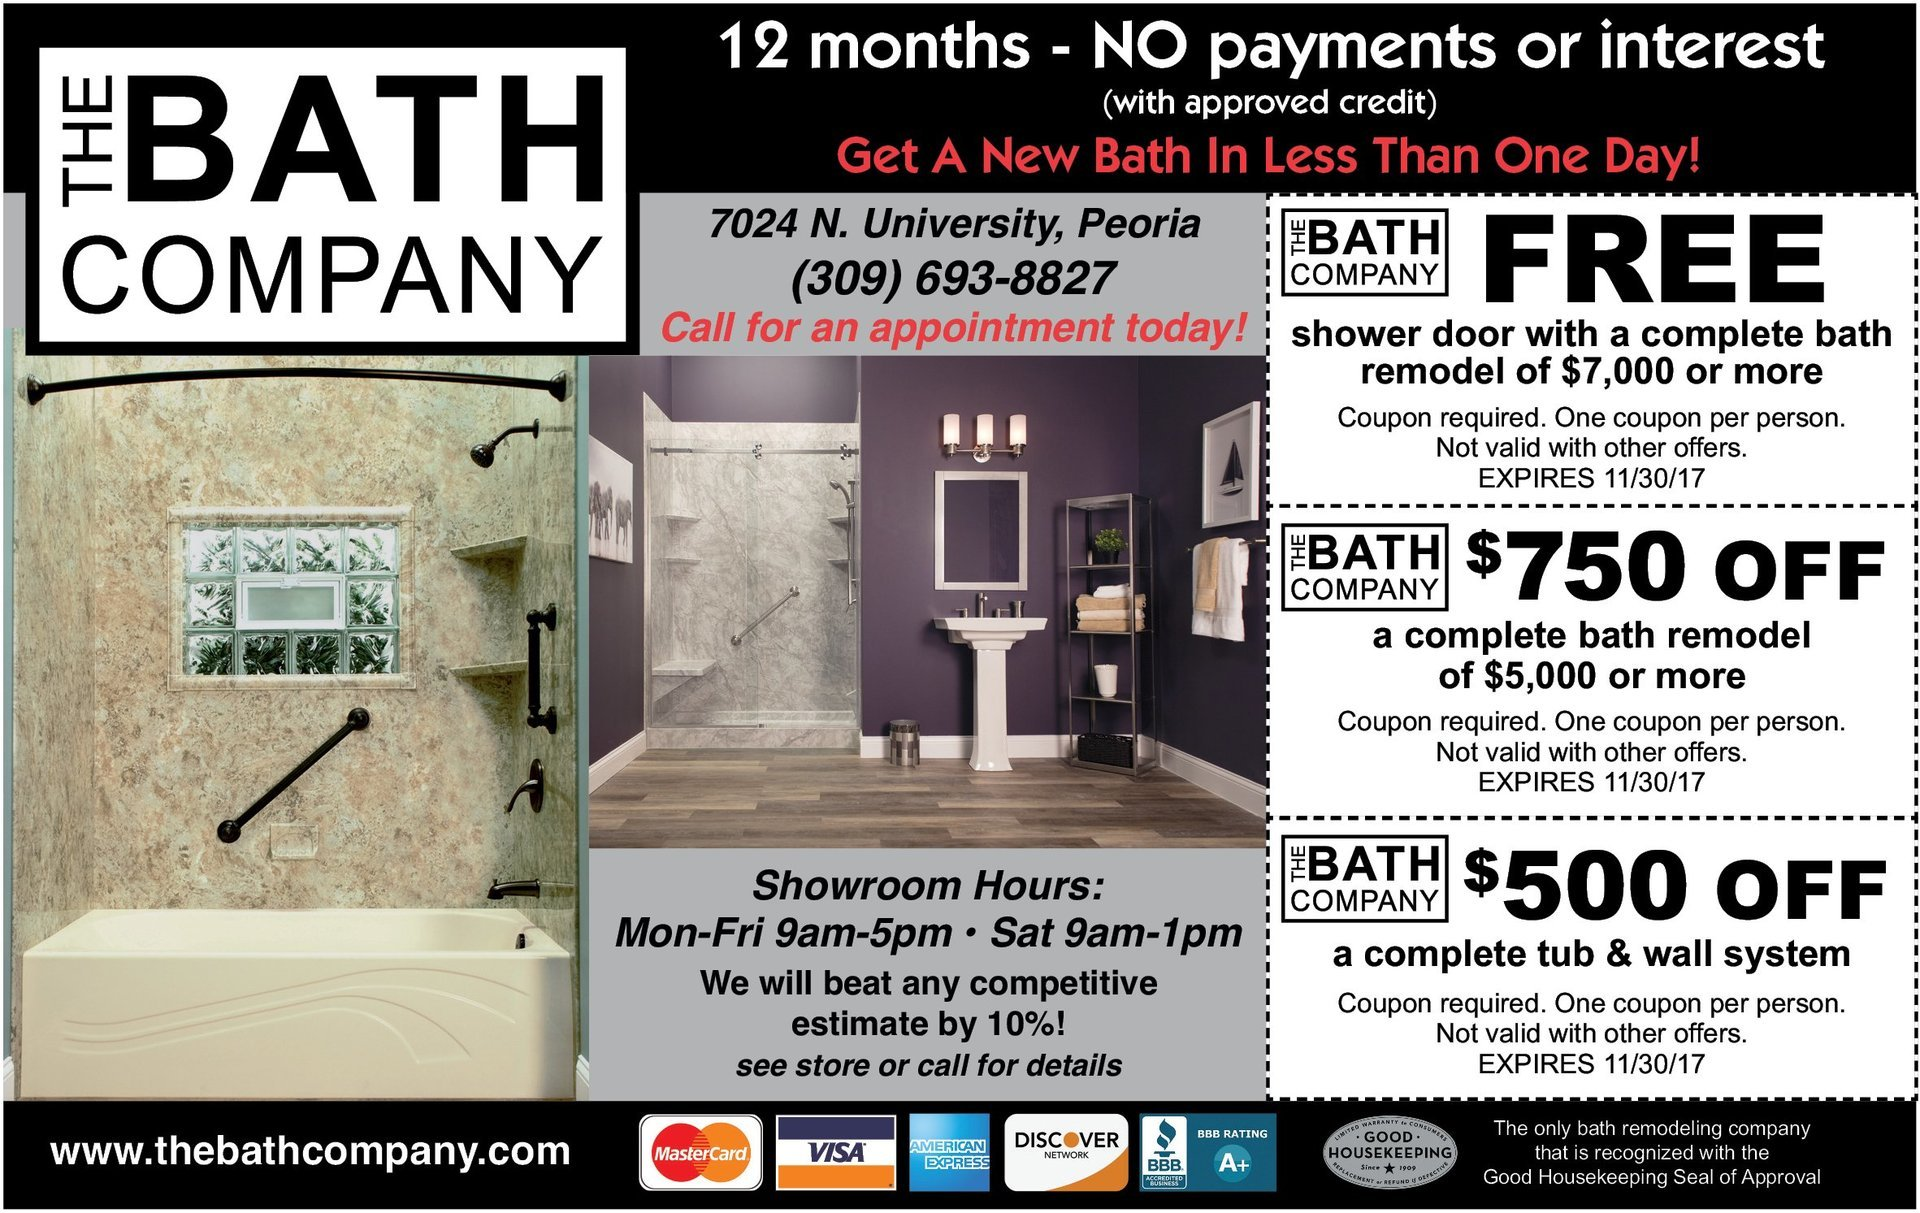 The Bath Company get a new bath in less than one day coupons Peoria, IL